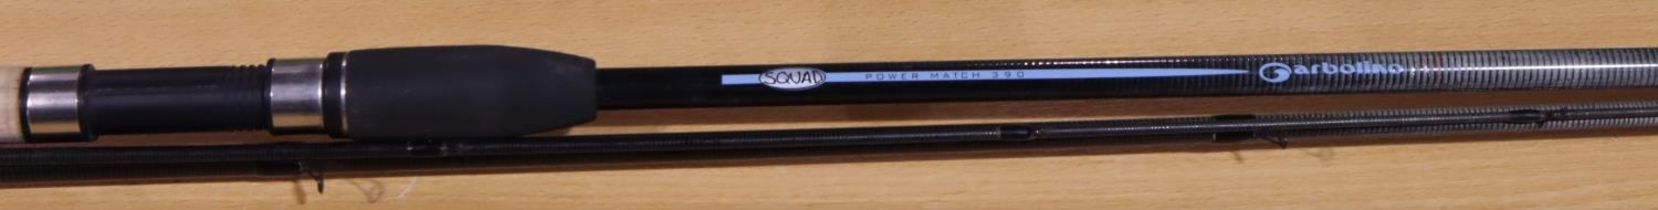 Garbolino Power Match rod, as new. P&P Group 3 (£25+VAT for the first lot and £5+VAT for